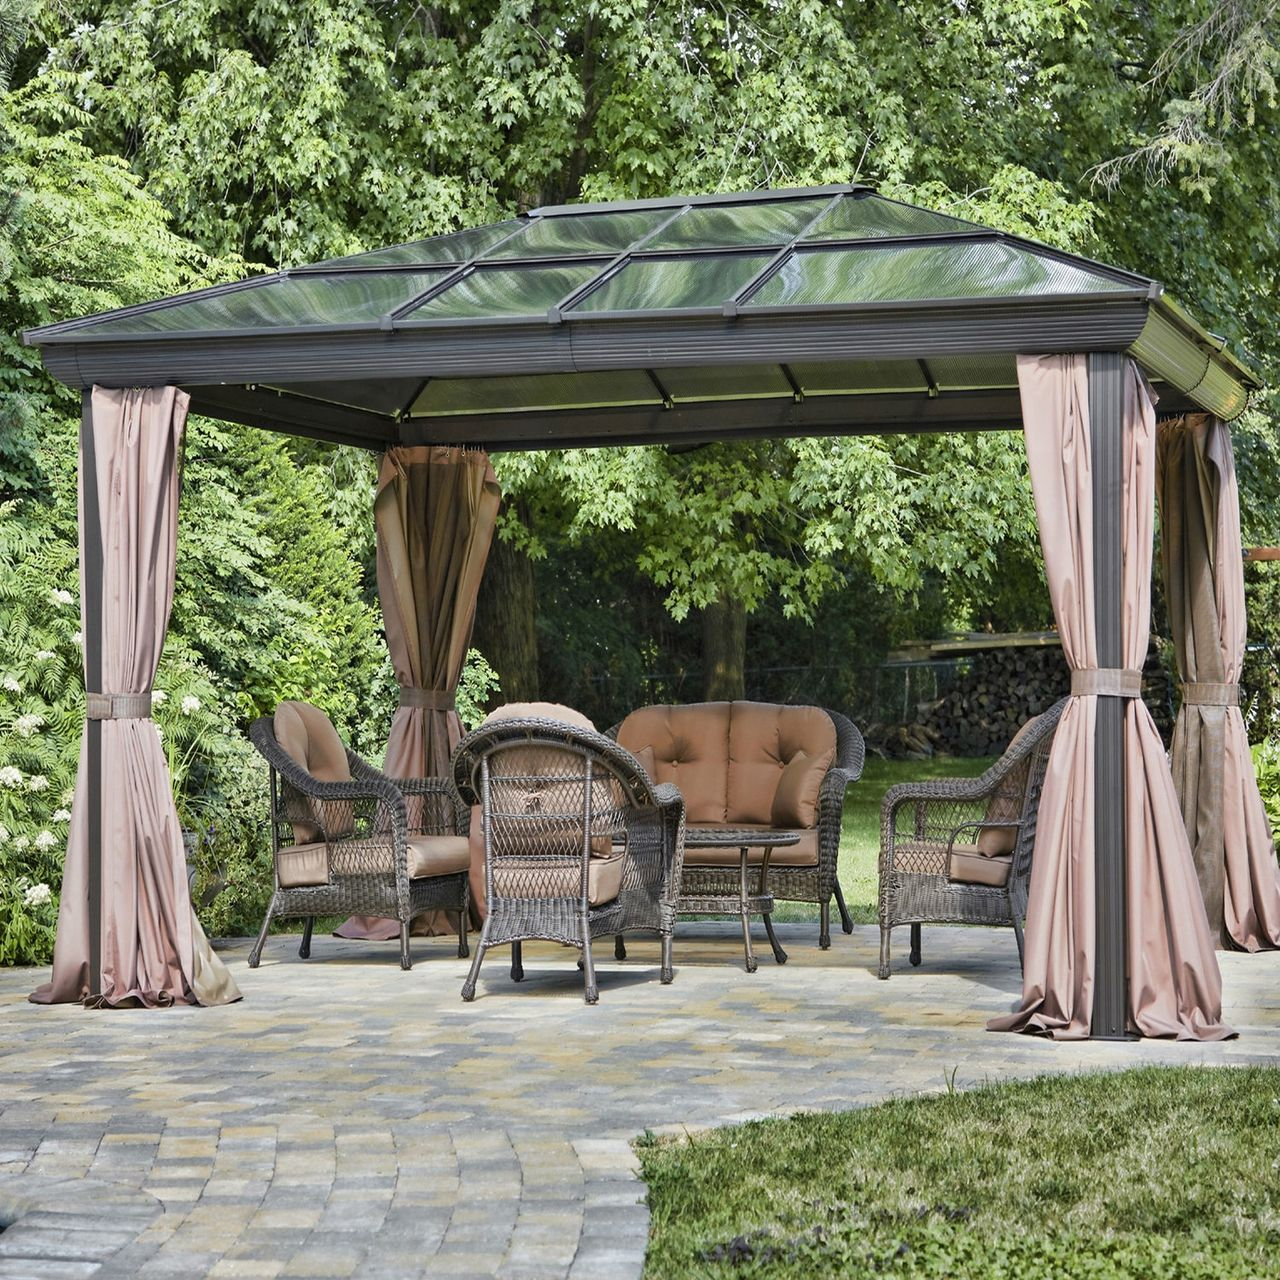 Gazebo curtains outdoor - X Year Round Use Gazebo With Uv Blocking Panels Canopy Curtains